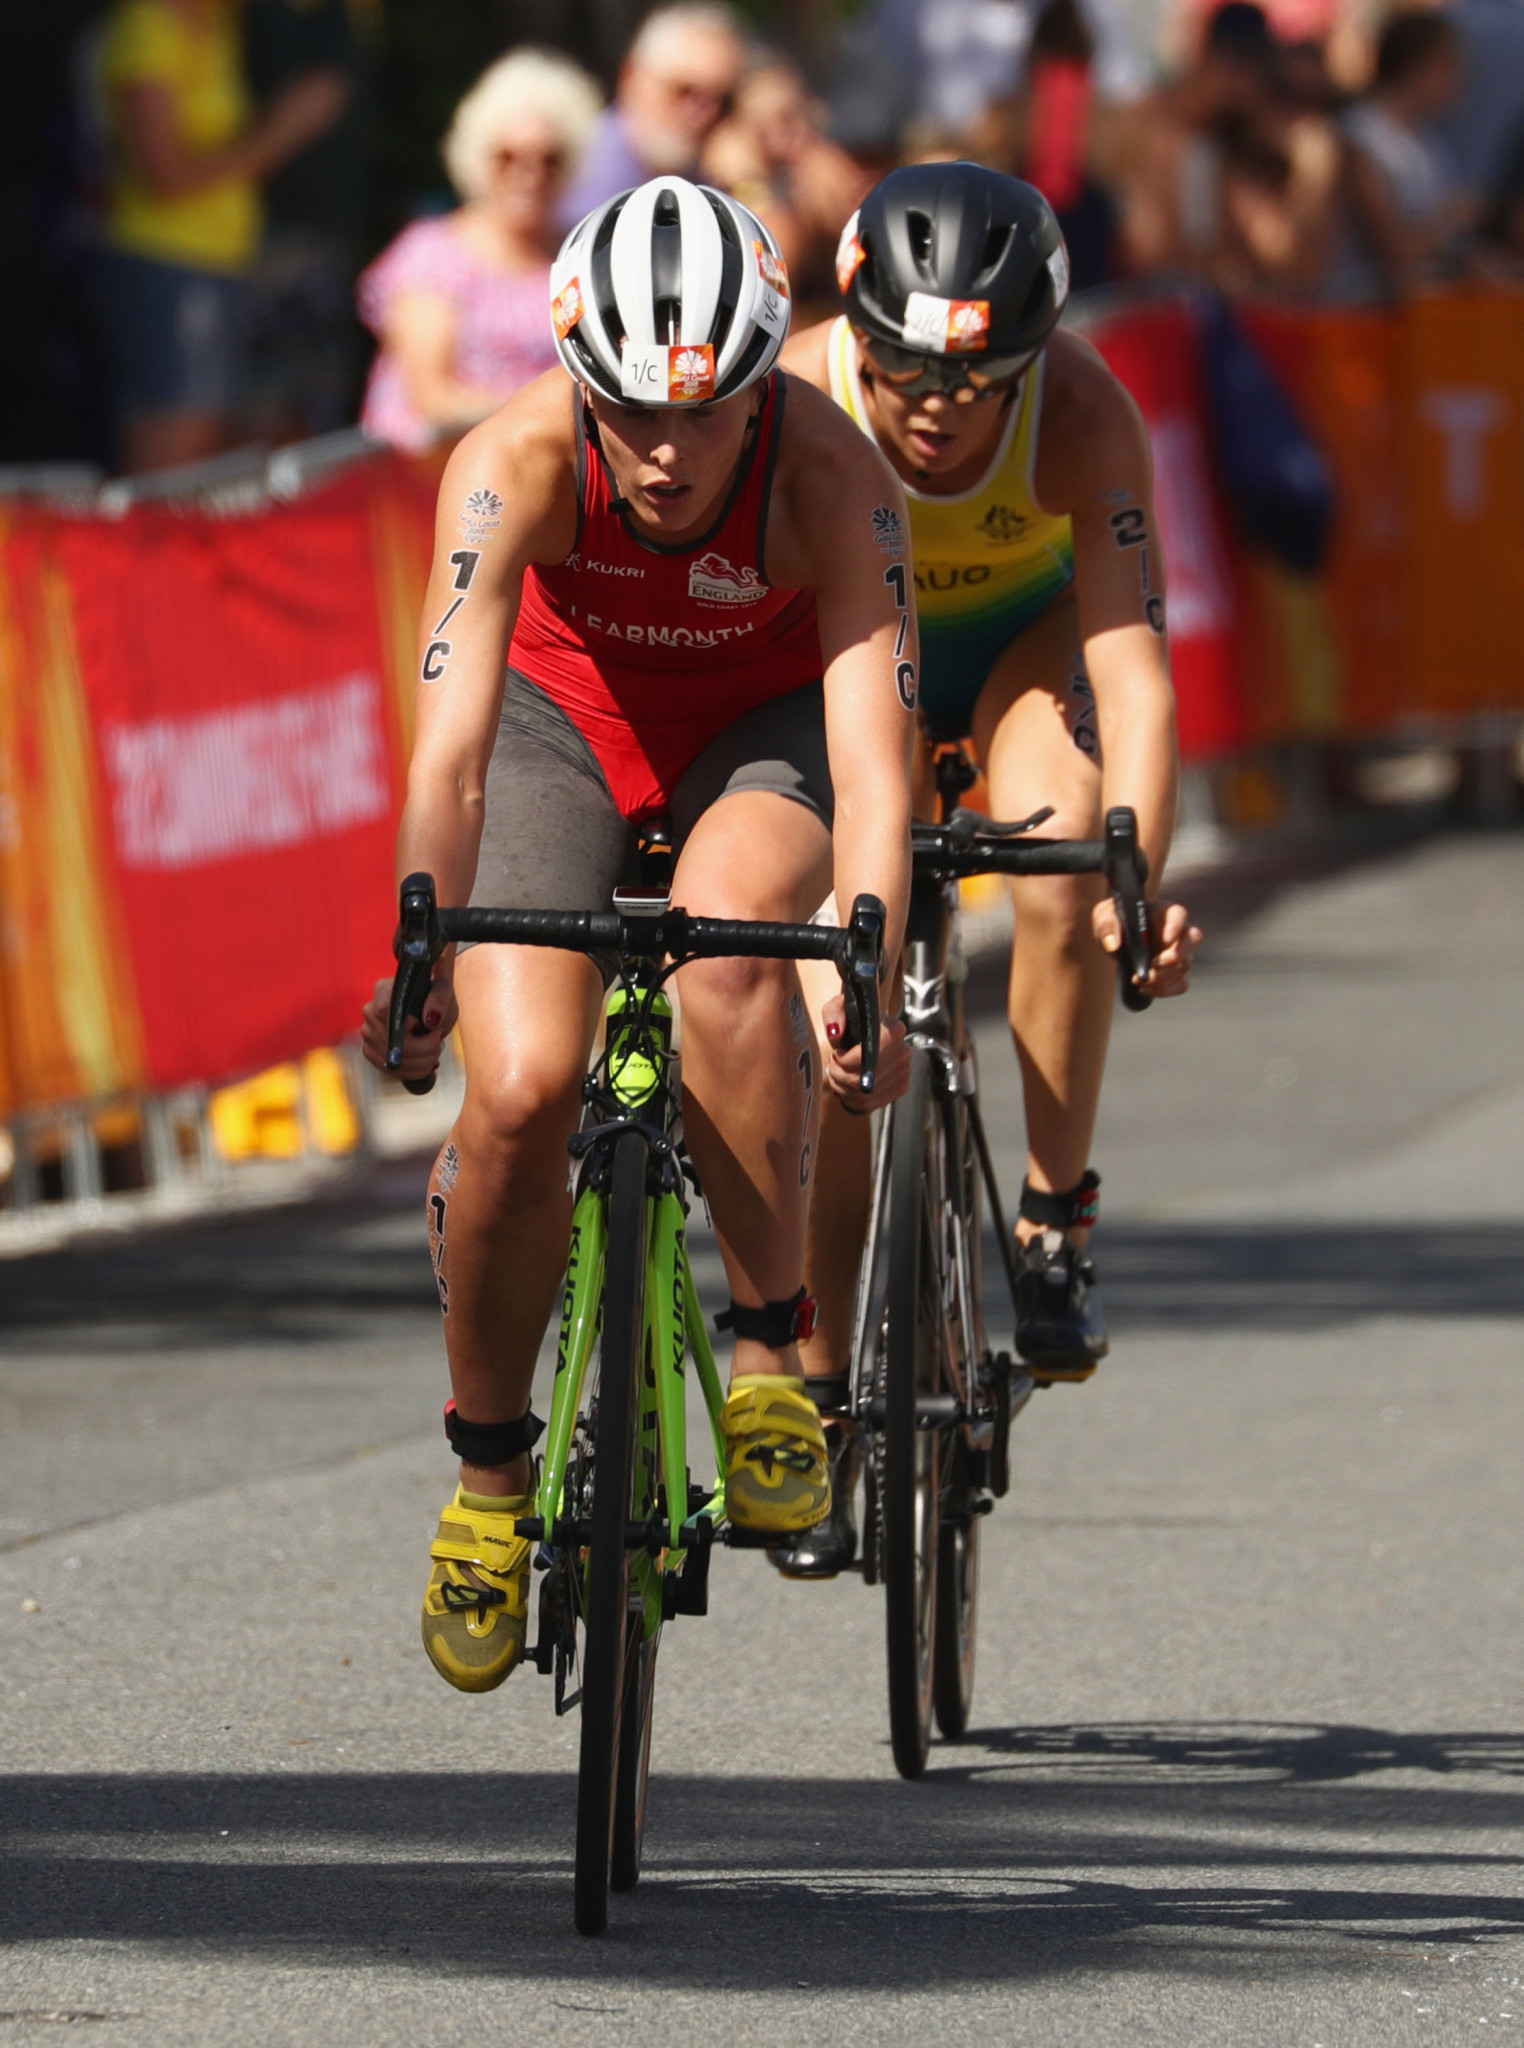 The battle between Jessica Learmonth of England and Ashleigh Gentle of Australia on leg three proved key ©Getty Images